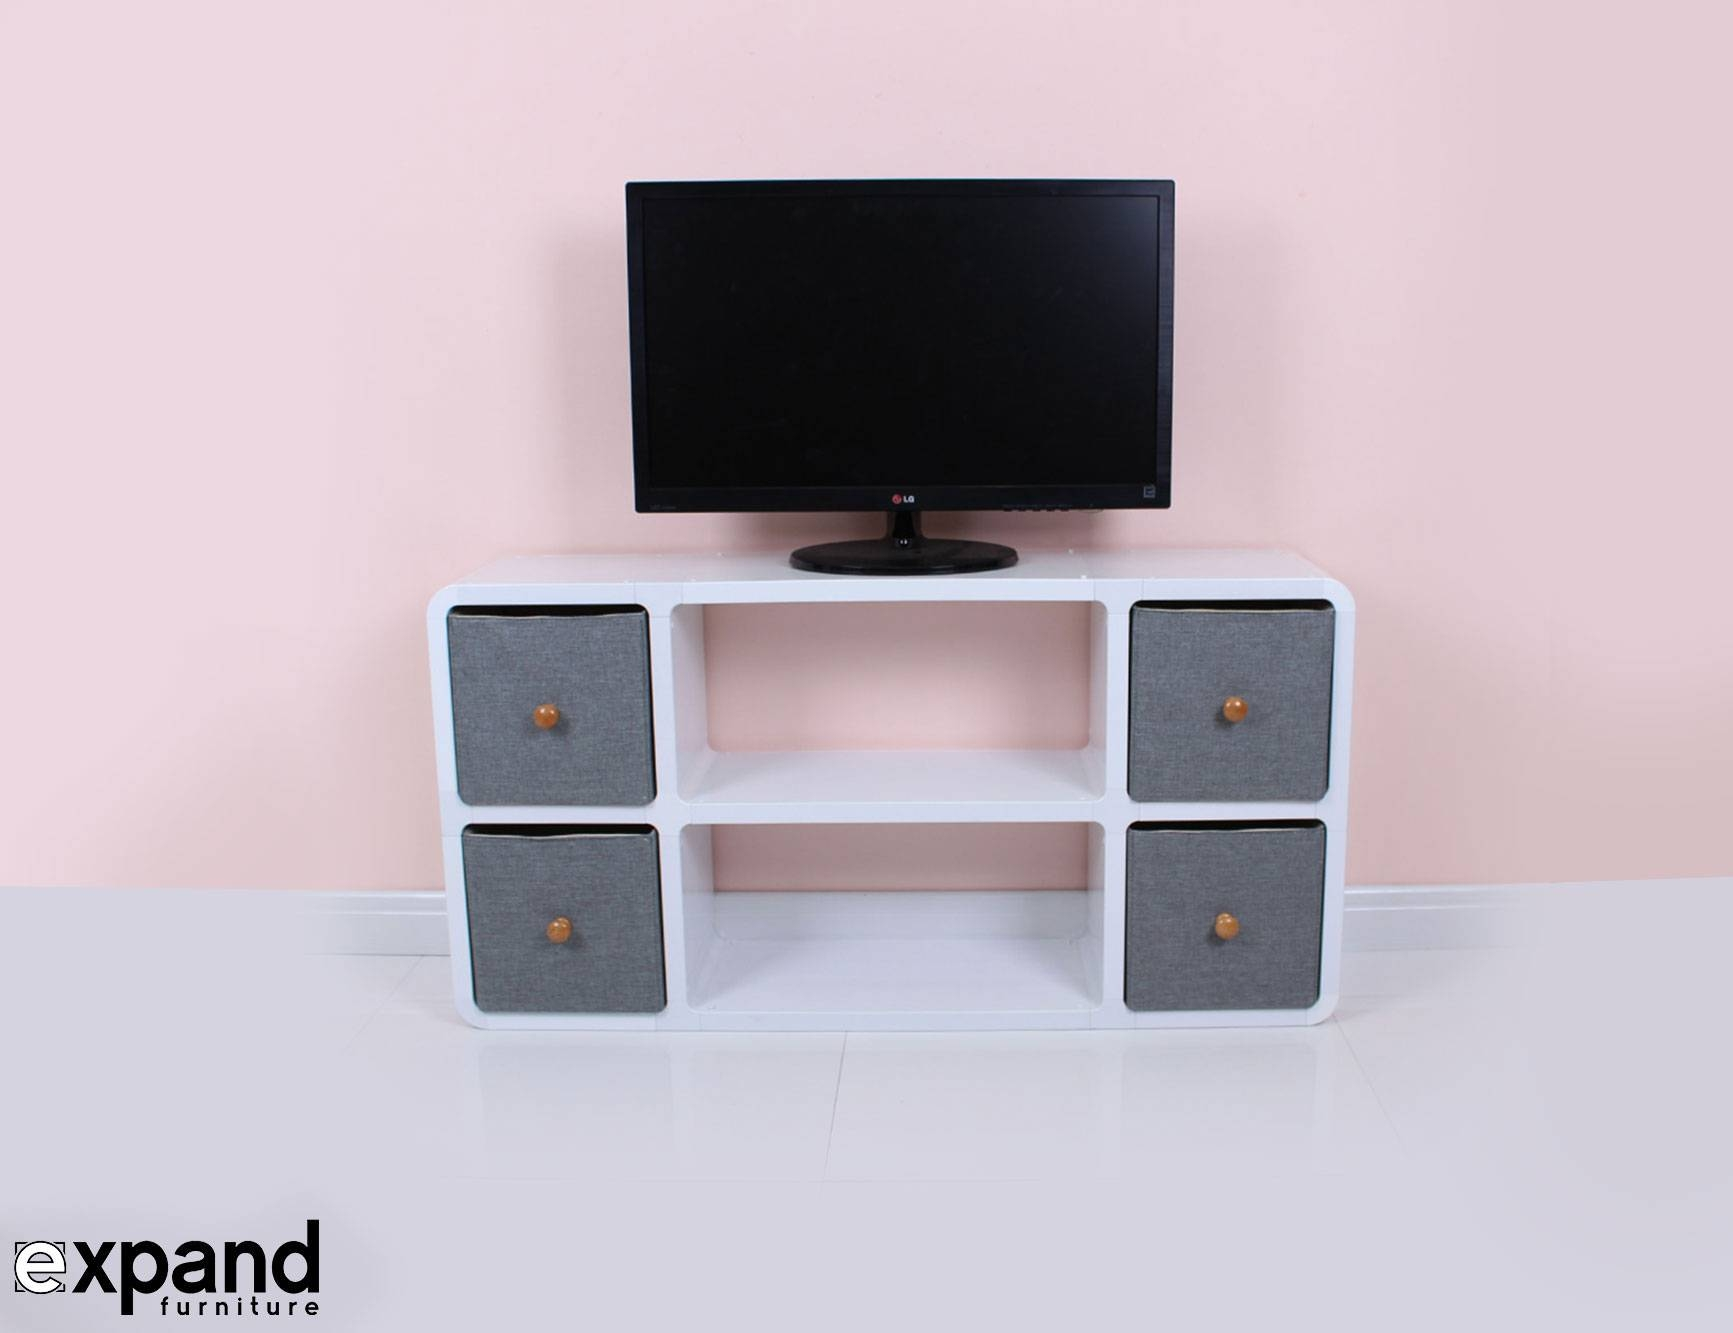 Slim Tv Stand 6 - Made For Modern Thin Tvs |Expand within Skinny Tv Stands (Image 7 of 15)